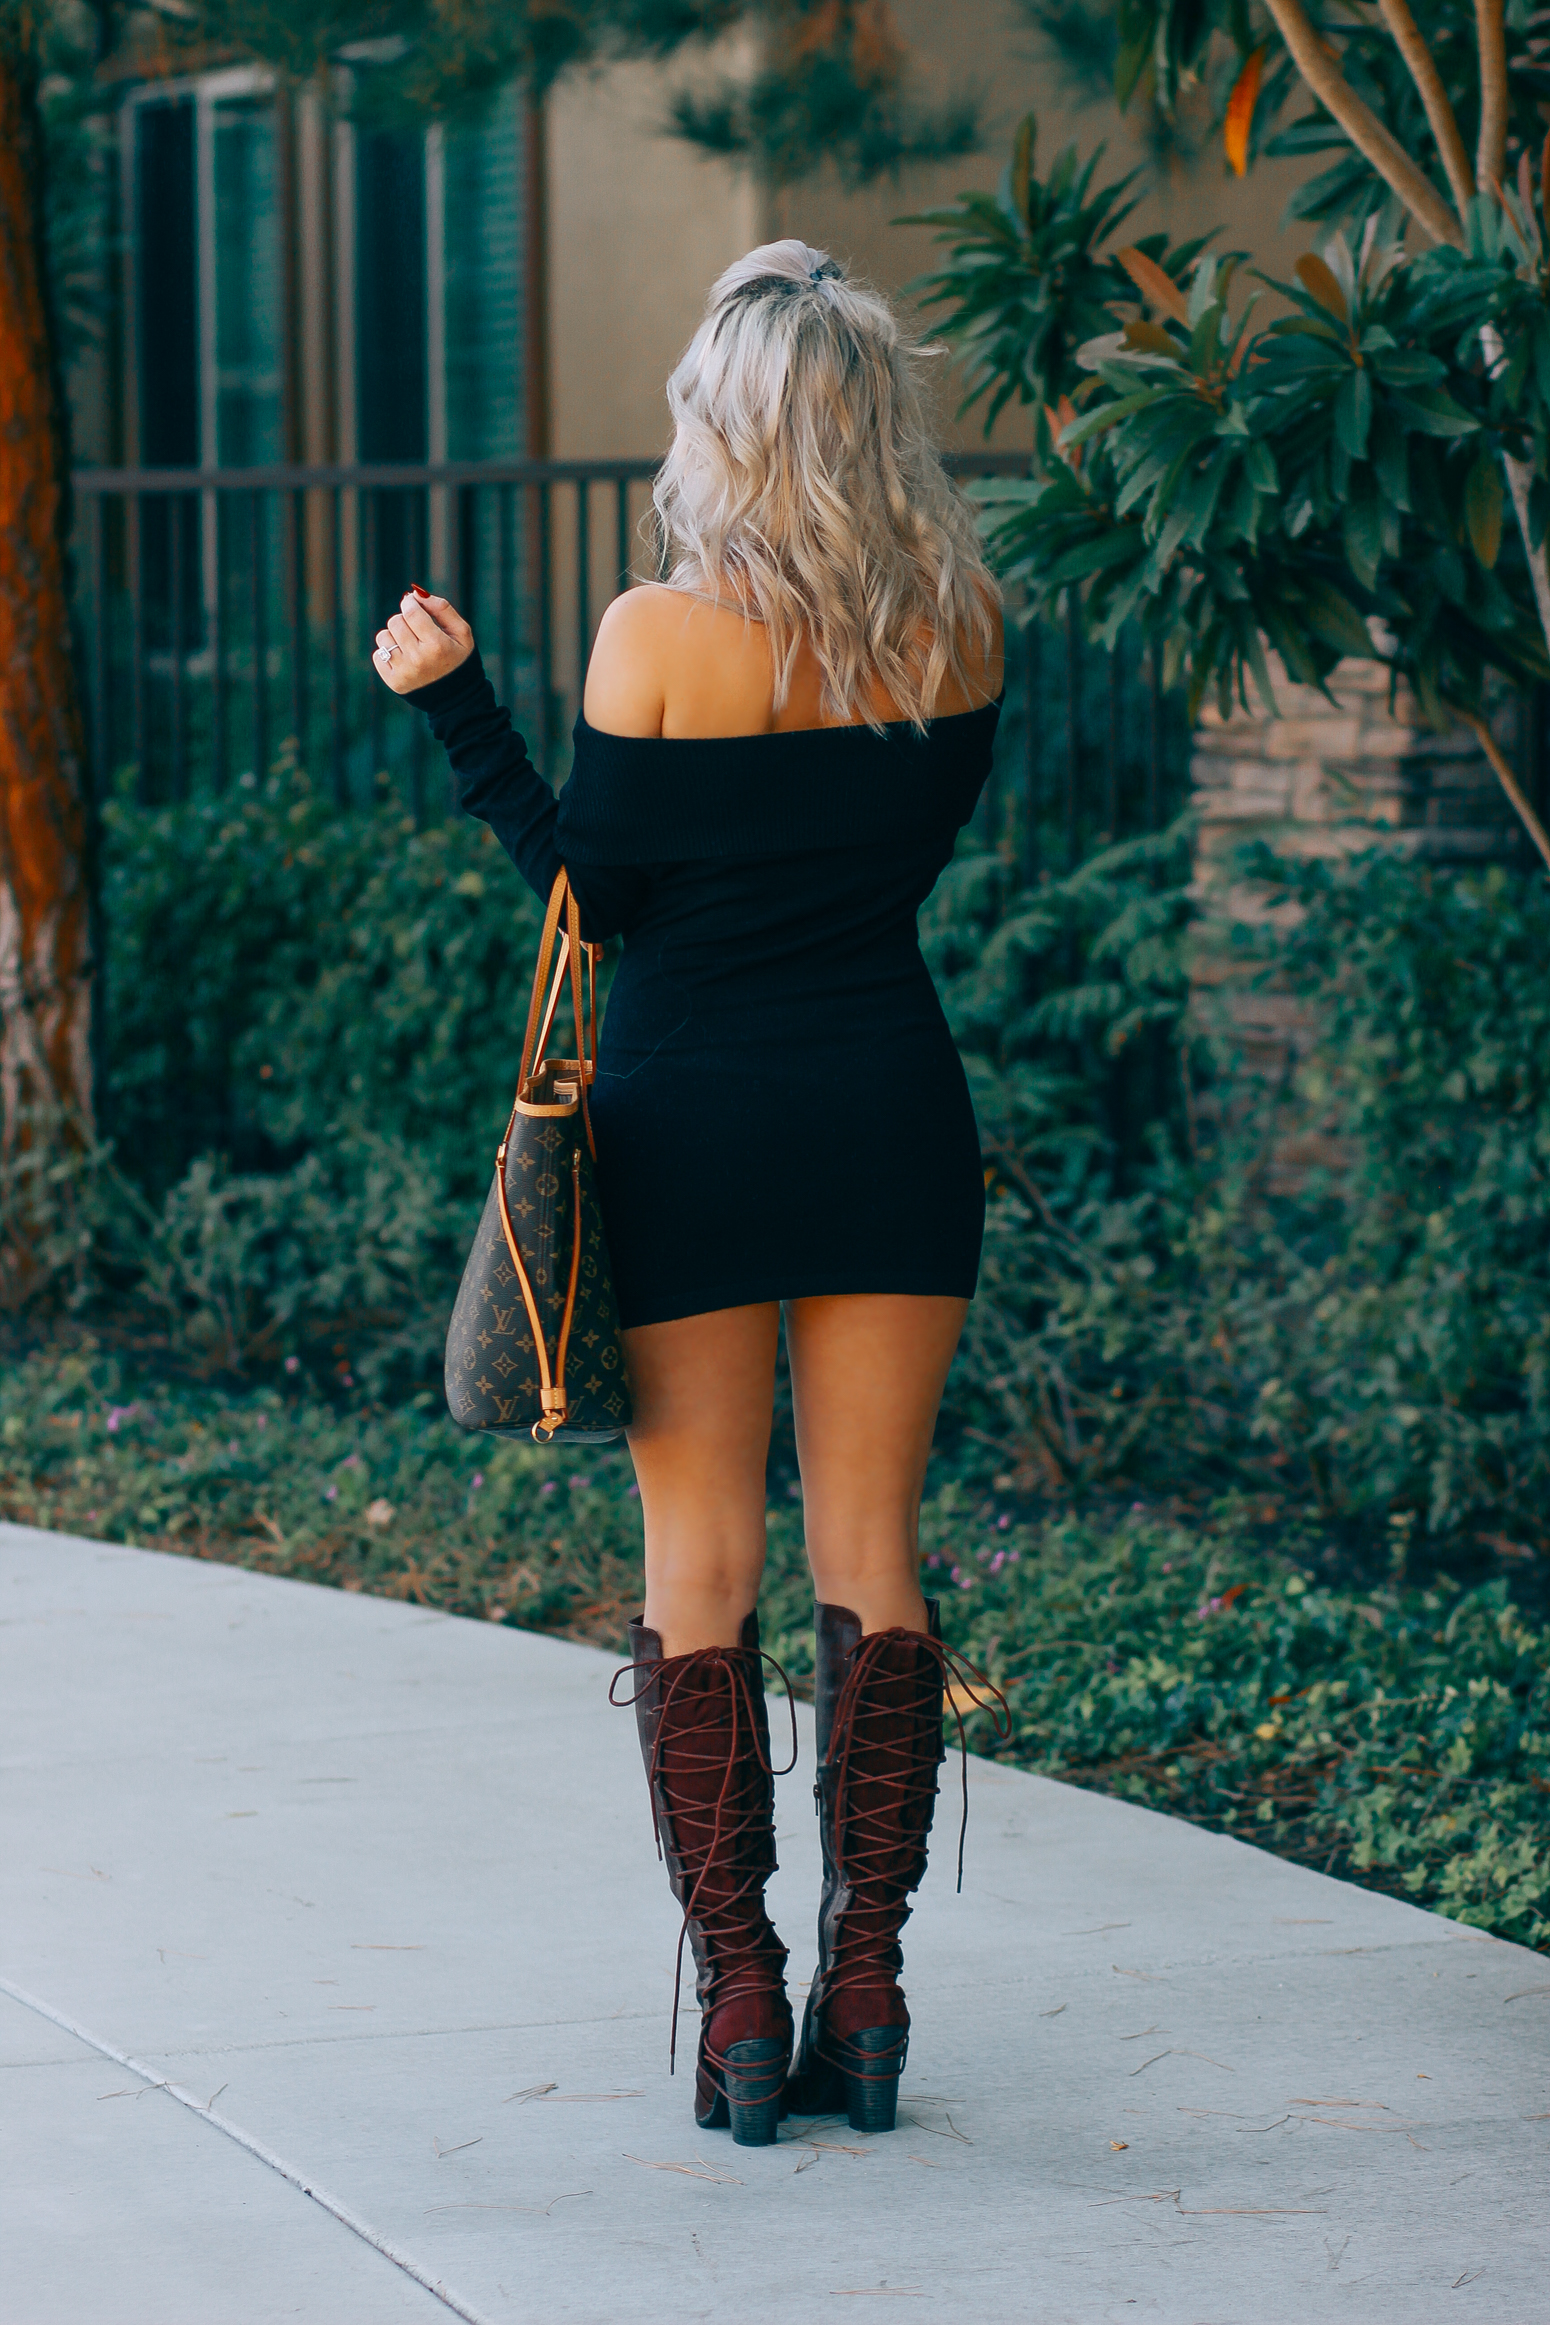 Blondie in the City | Black Off The Shoulder Dress, Knee High Boots, Louis Vuitton Neverfull Bag